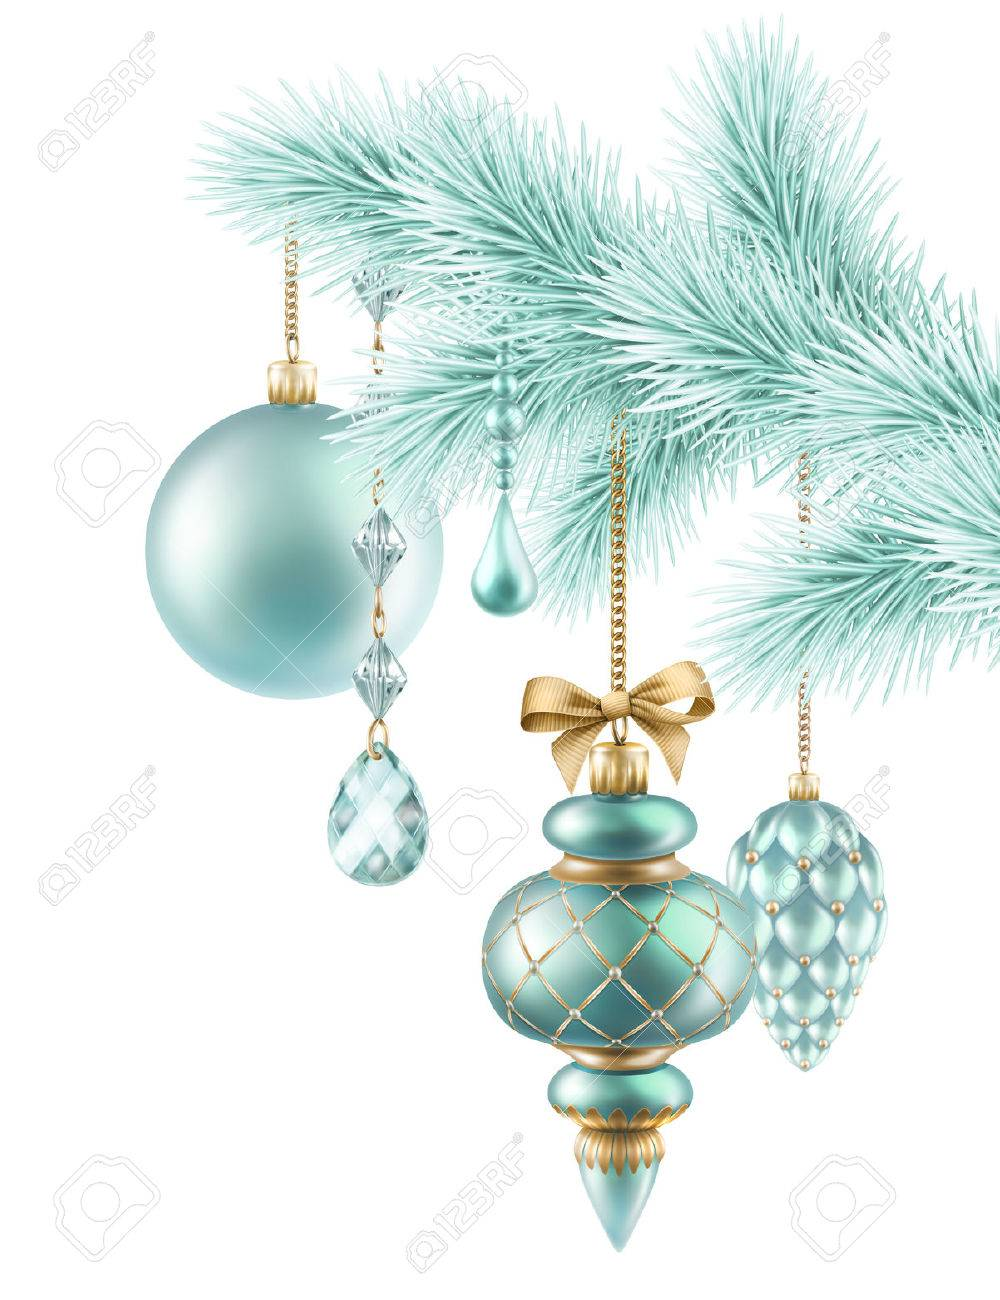 Frozen Twig With Christmas Ornaments Illustration Fir Tree Decorations Stock Photo Picture And Royalty Free Image Image 32750366